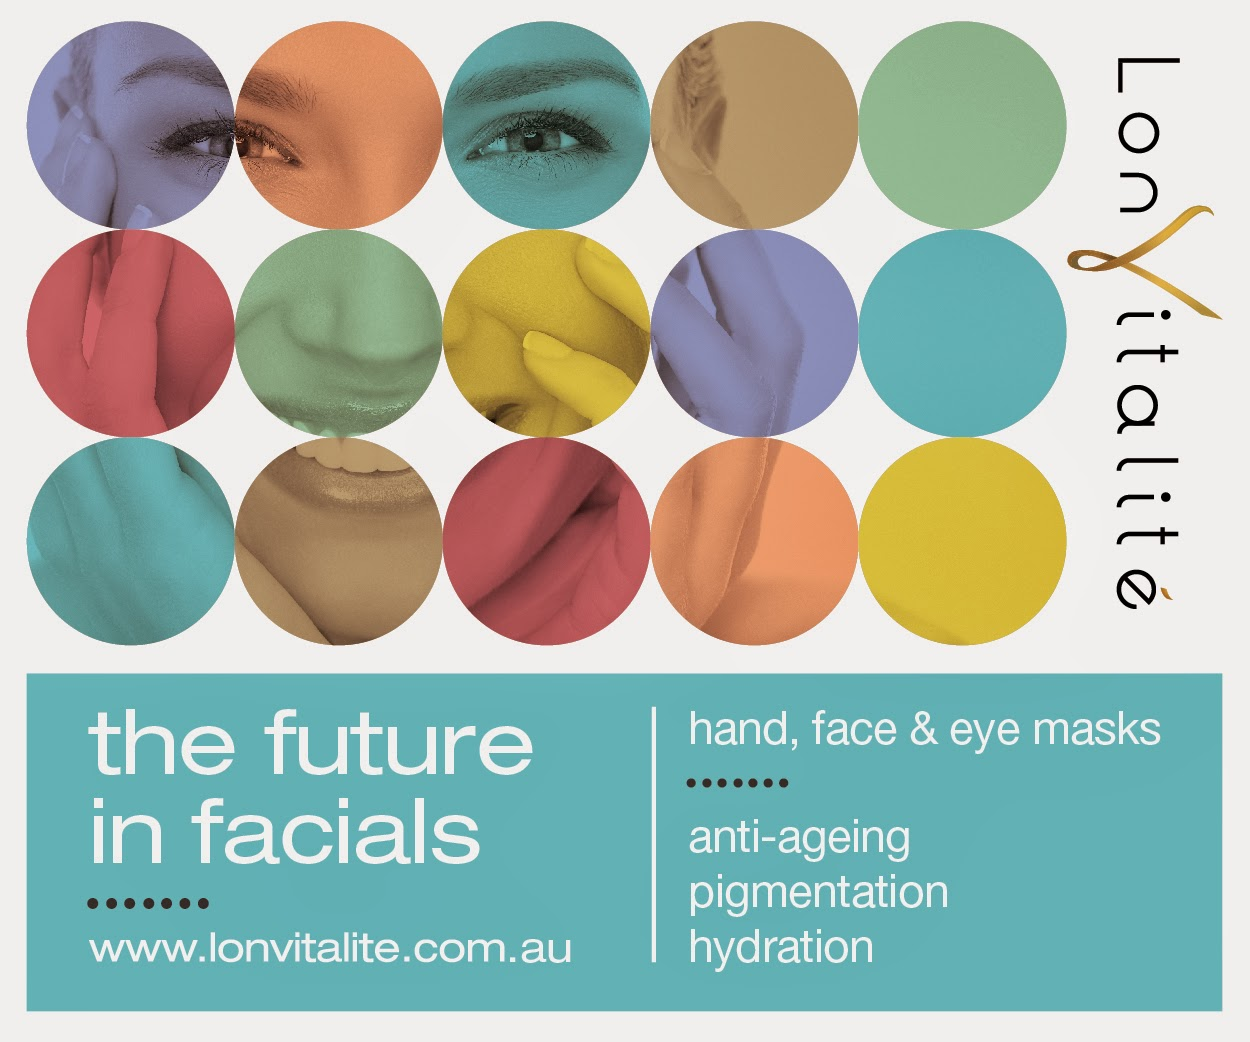 Luxurious Aussie Face, Hand & Eye Masks